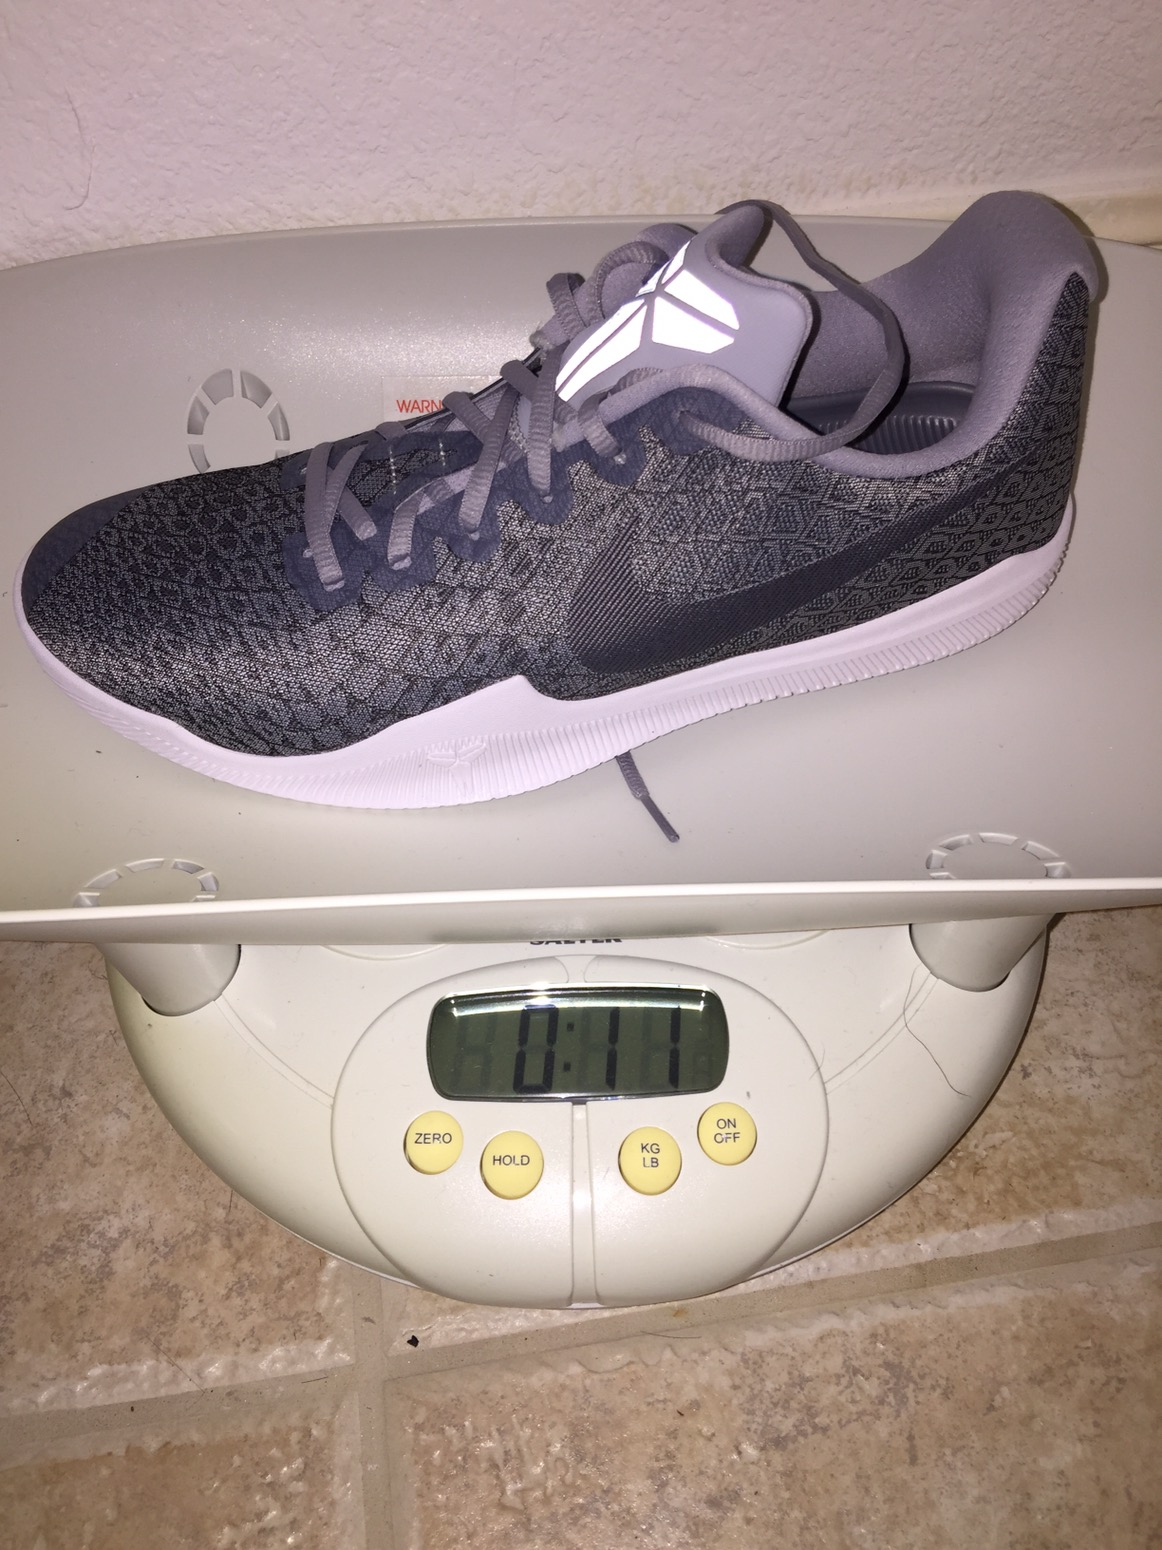 aa41f6b87c6f 11 ounces in a size 11. Guess lightweight is back again. 2.5 oz lighter  than the Rare Metal and KD IX